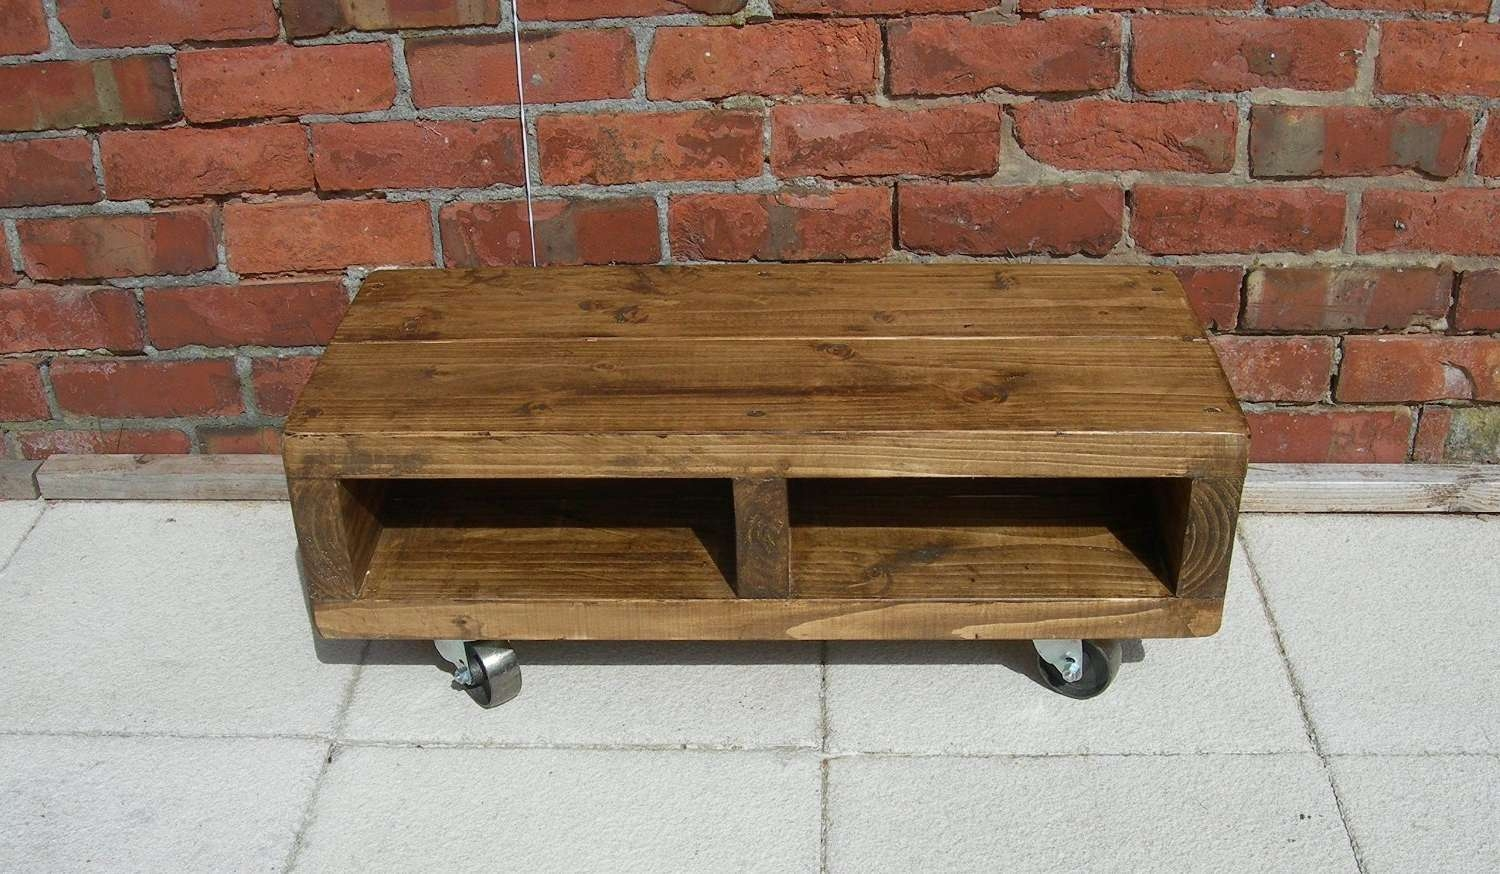 Solid Wood Low Tv Unit With Cast Iron Wheels, 90 Cm Contemporary Regarding Cast Iron Tv Stands (View 9 of 15)